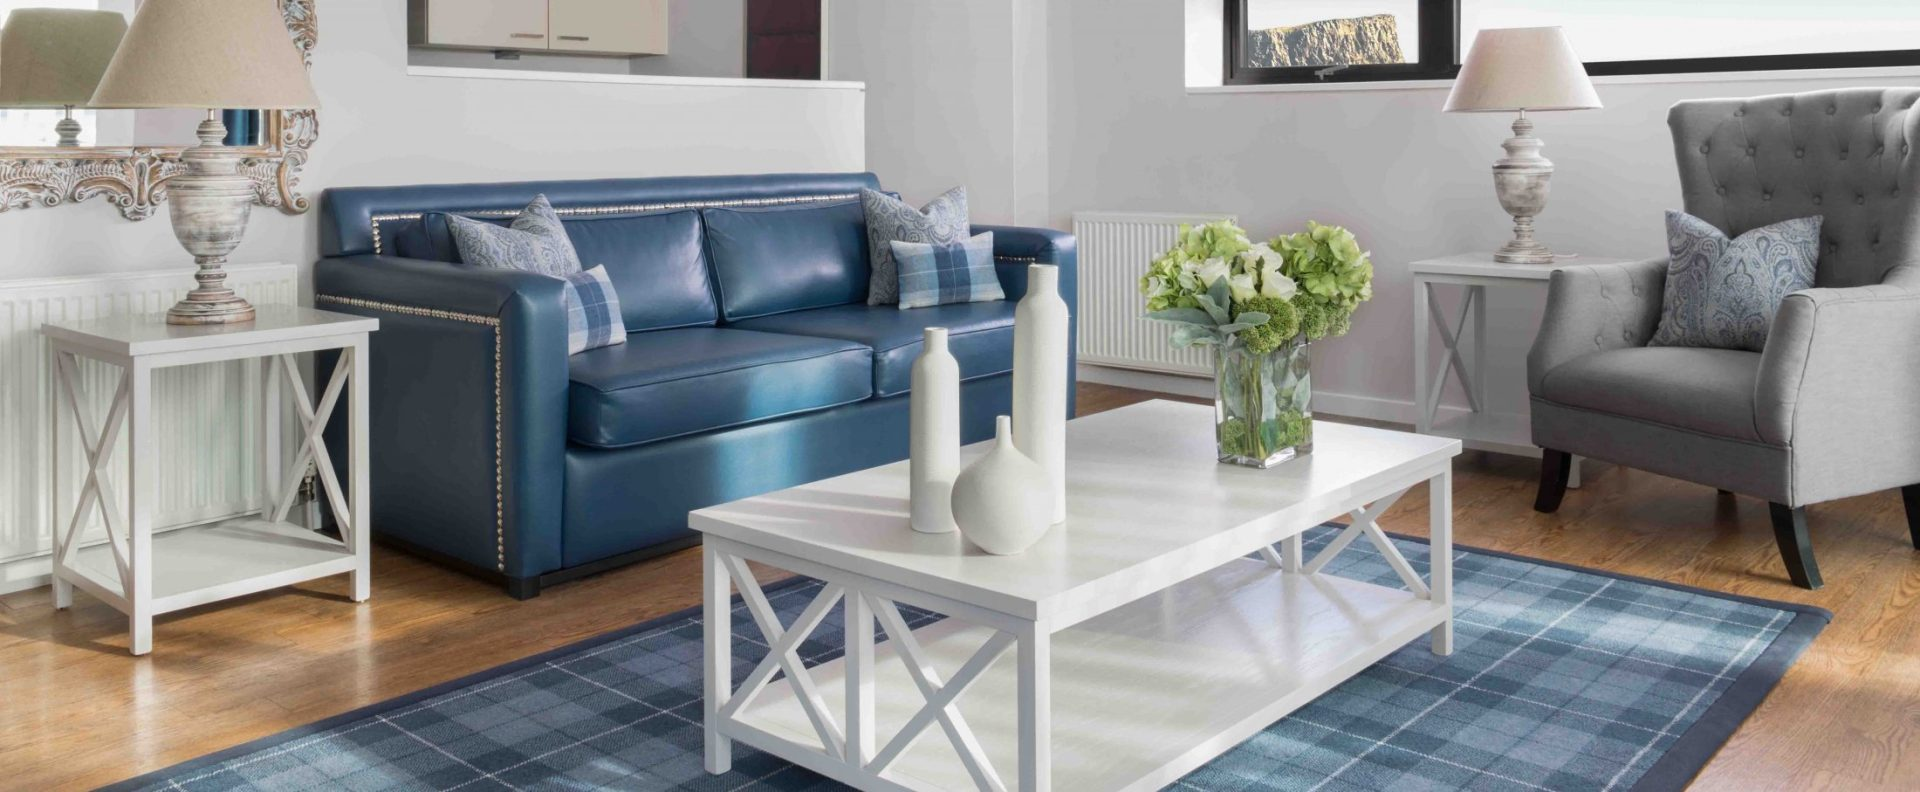 Serviced Apartments in Edinburgh, Scotland | The Edinburgh Collection